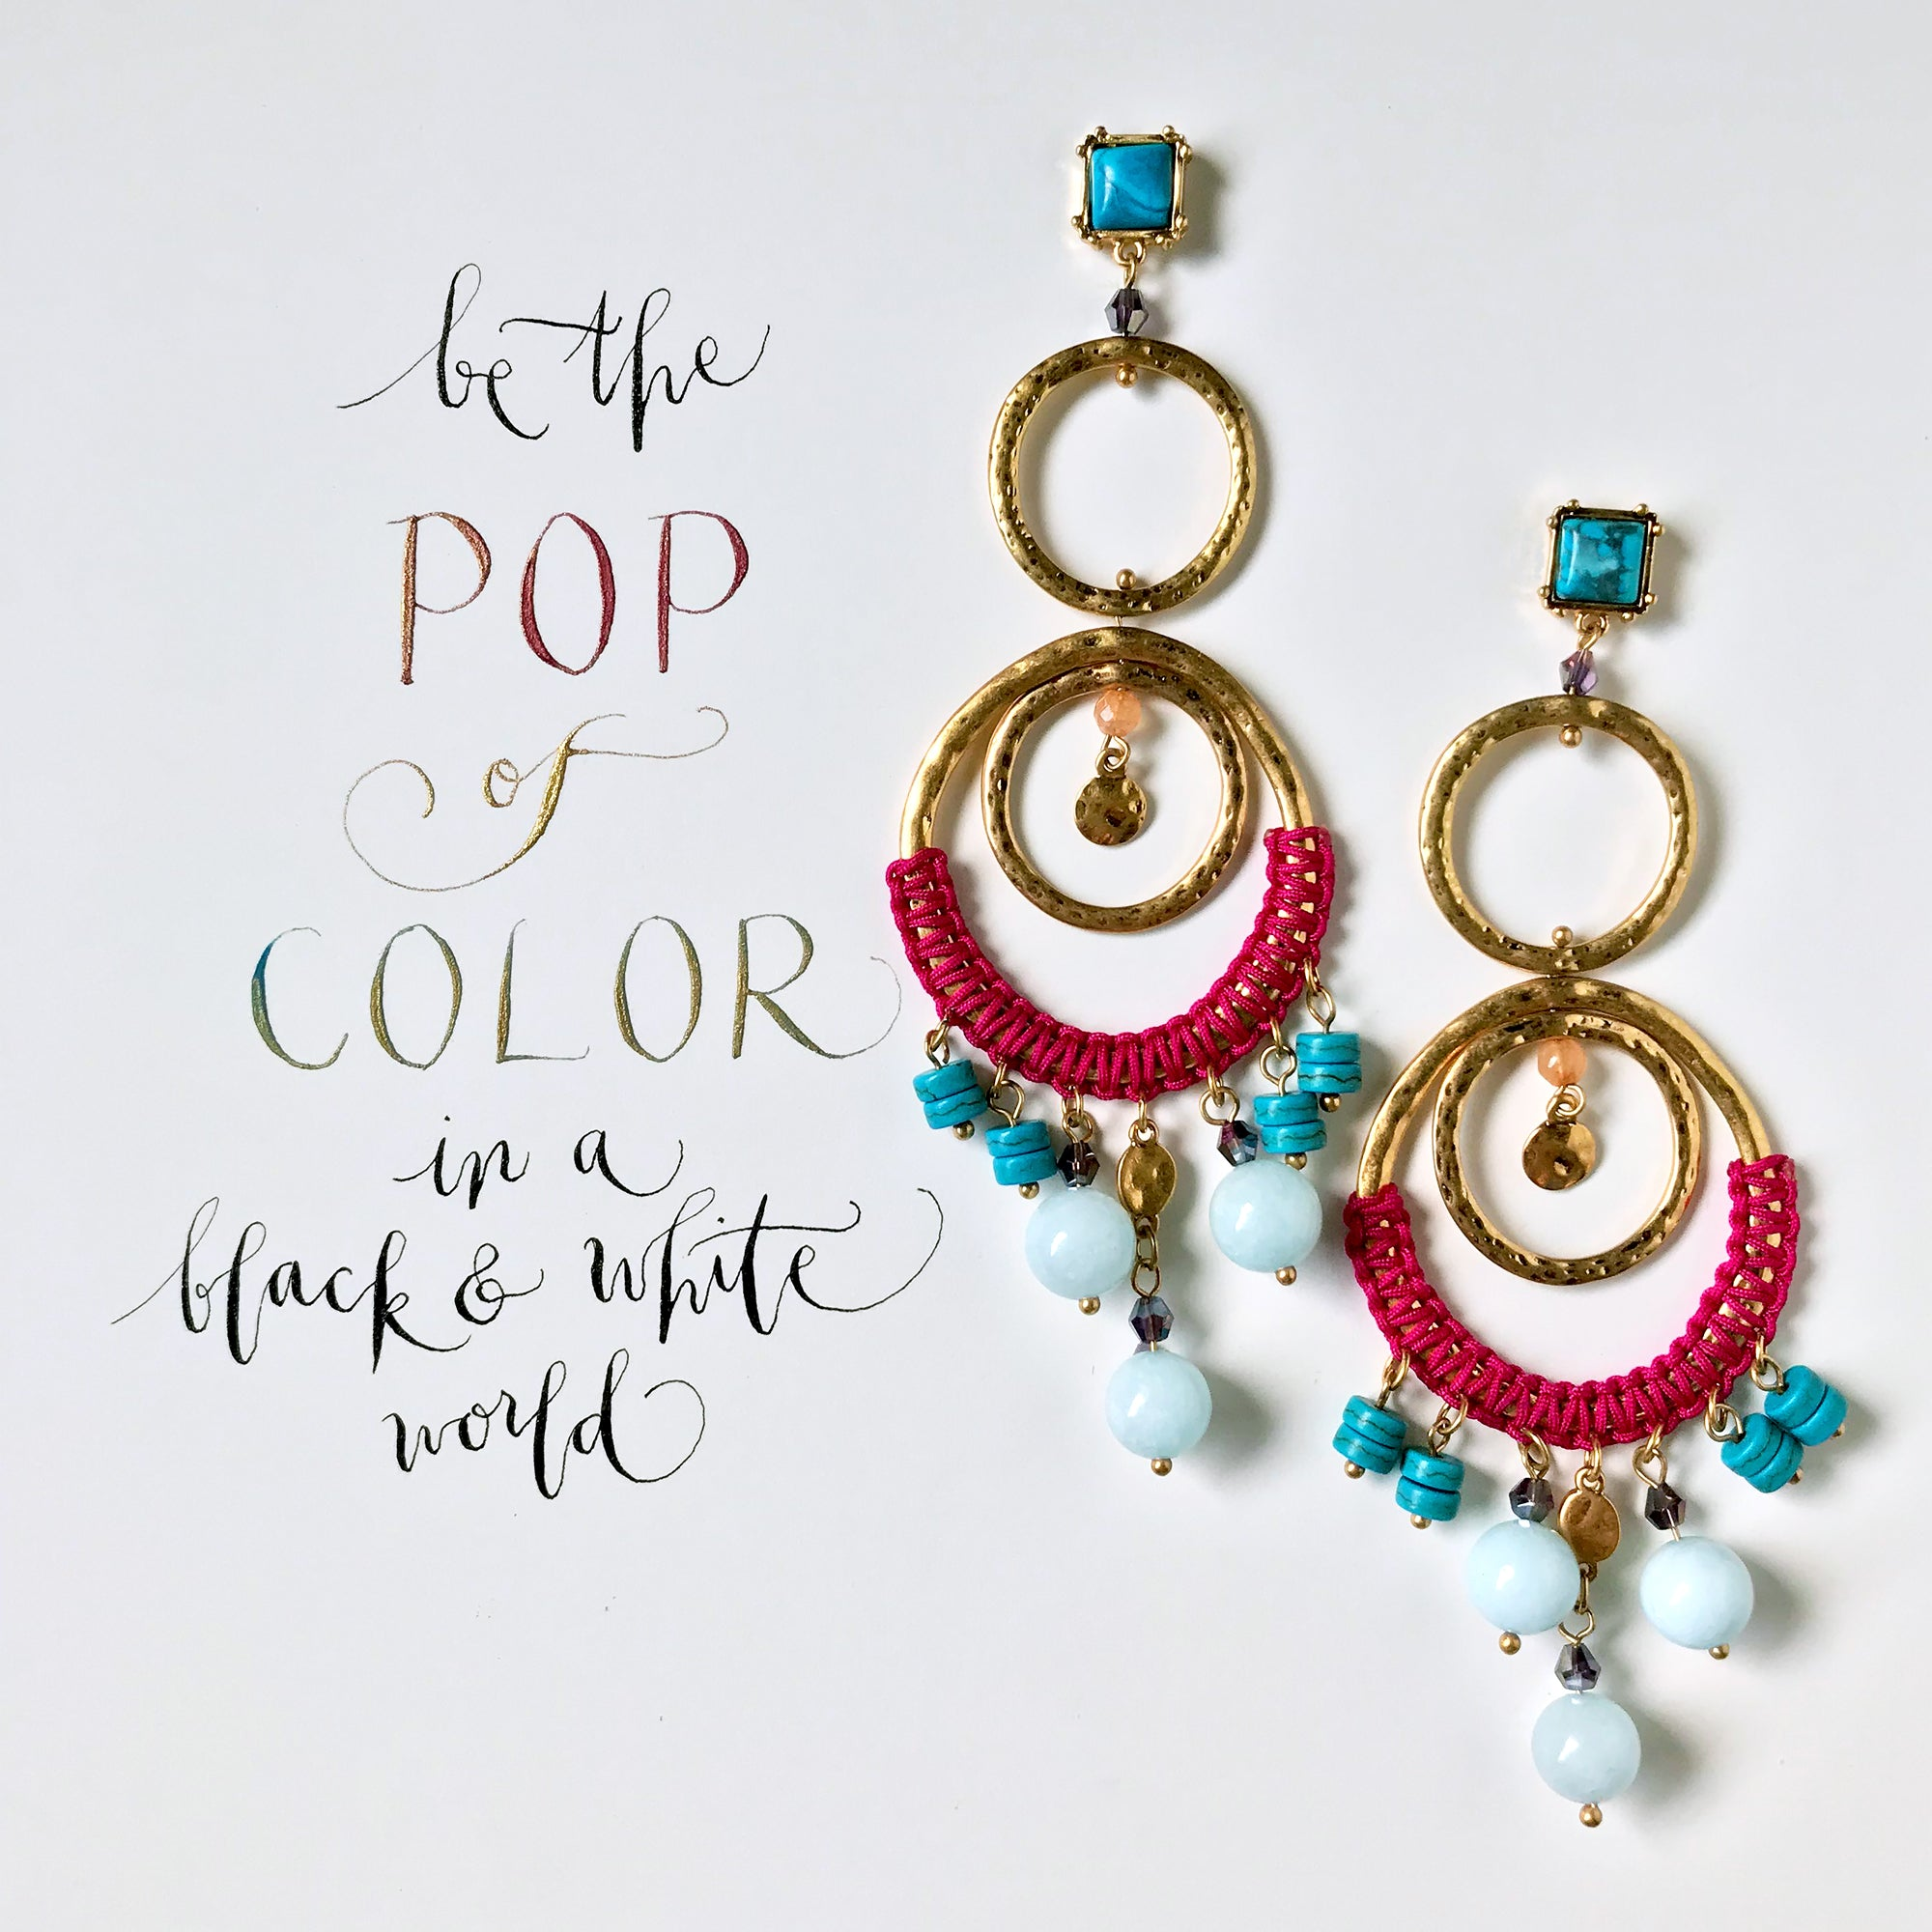 #SequinSayings - Be the Pop of Color...